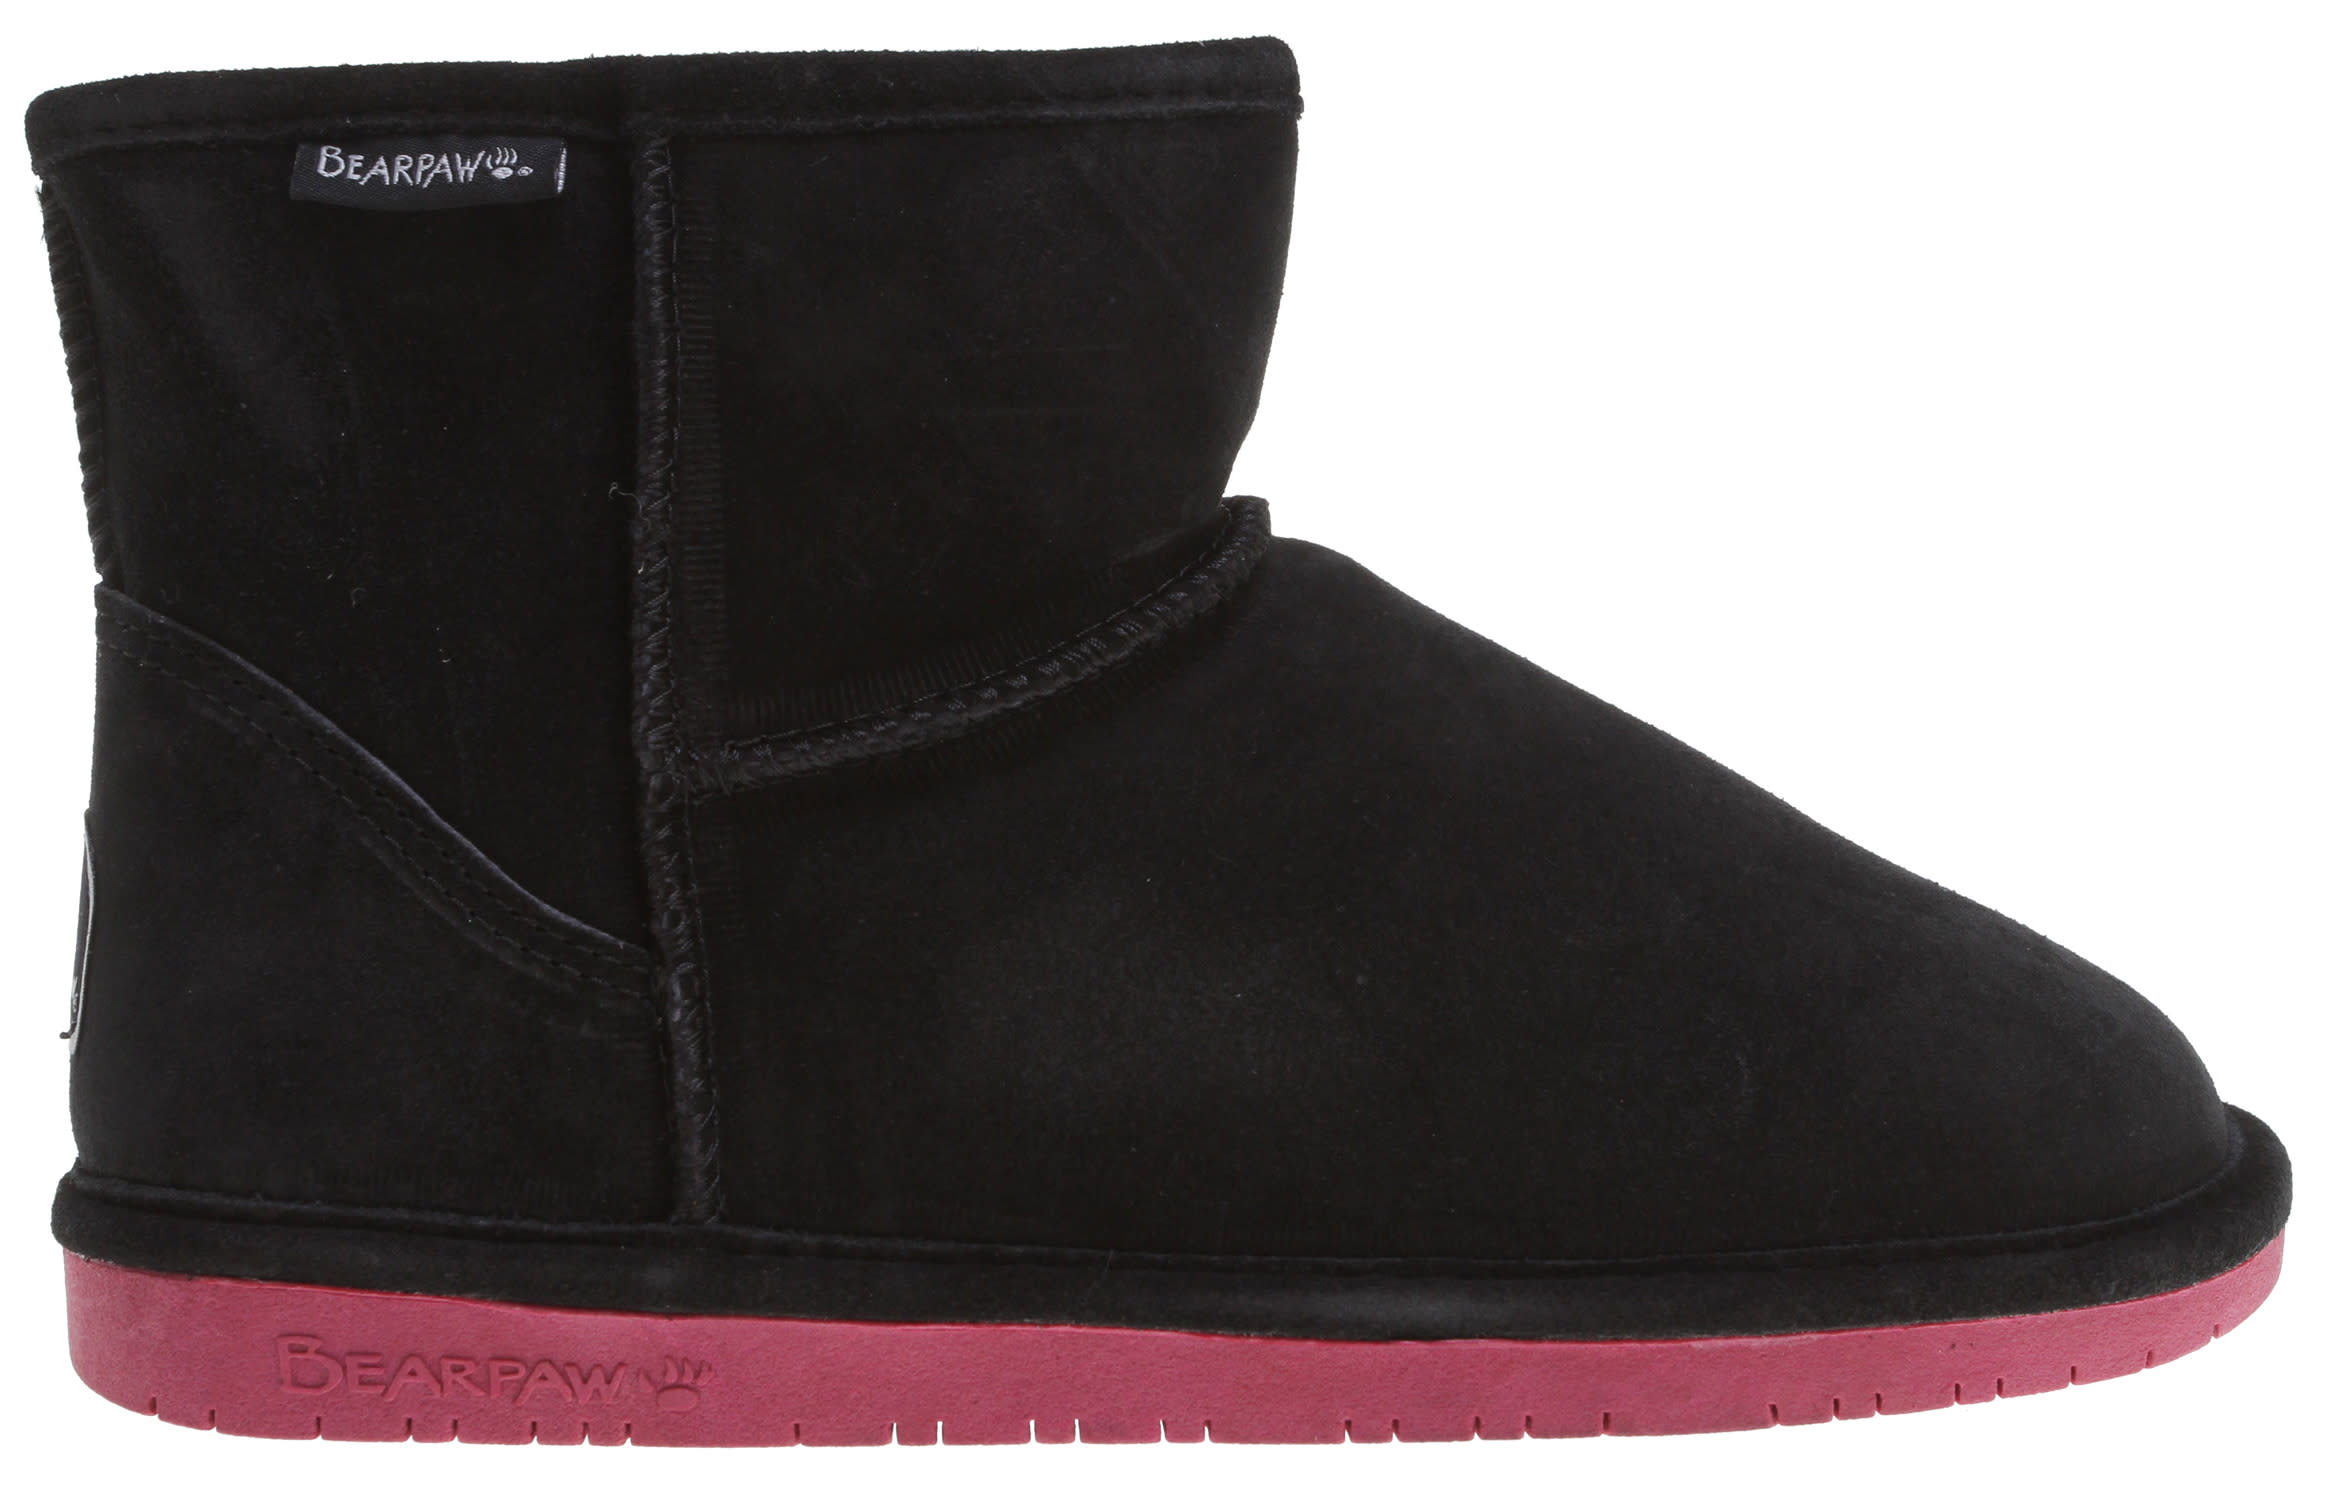 6pm Boot Sale: Save up to 70% on UGGs, Bearpaw and EMU | Mommysavers